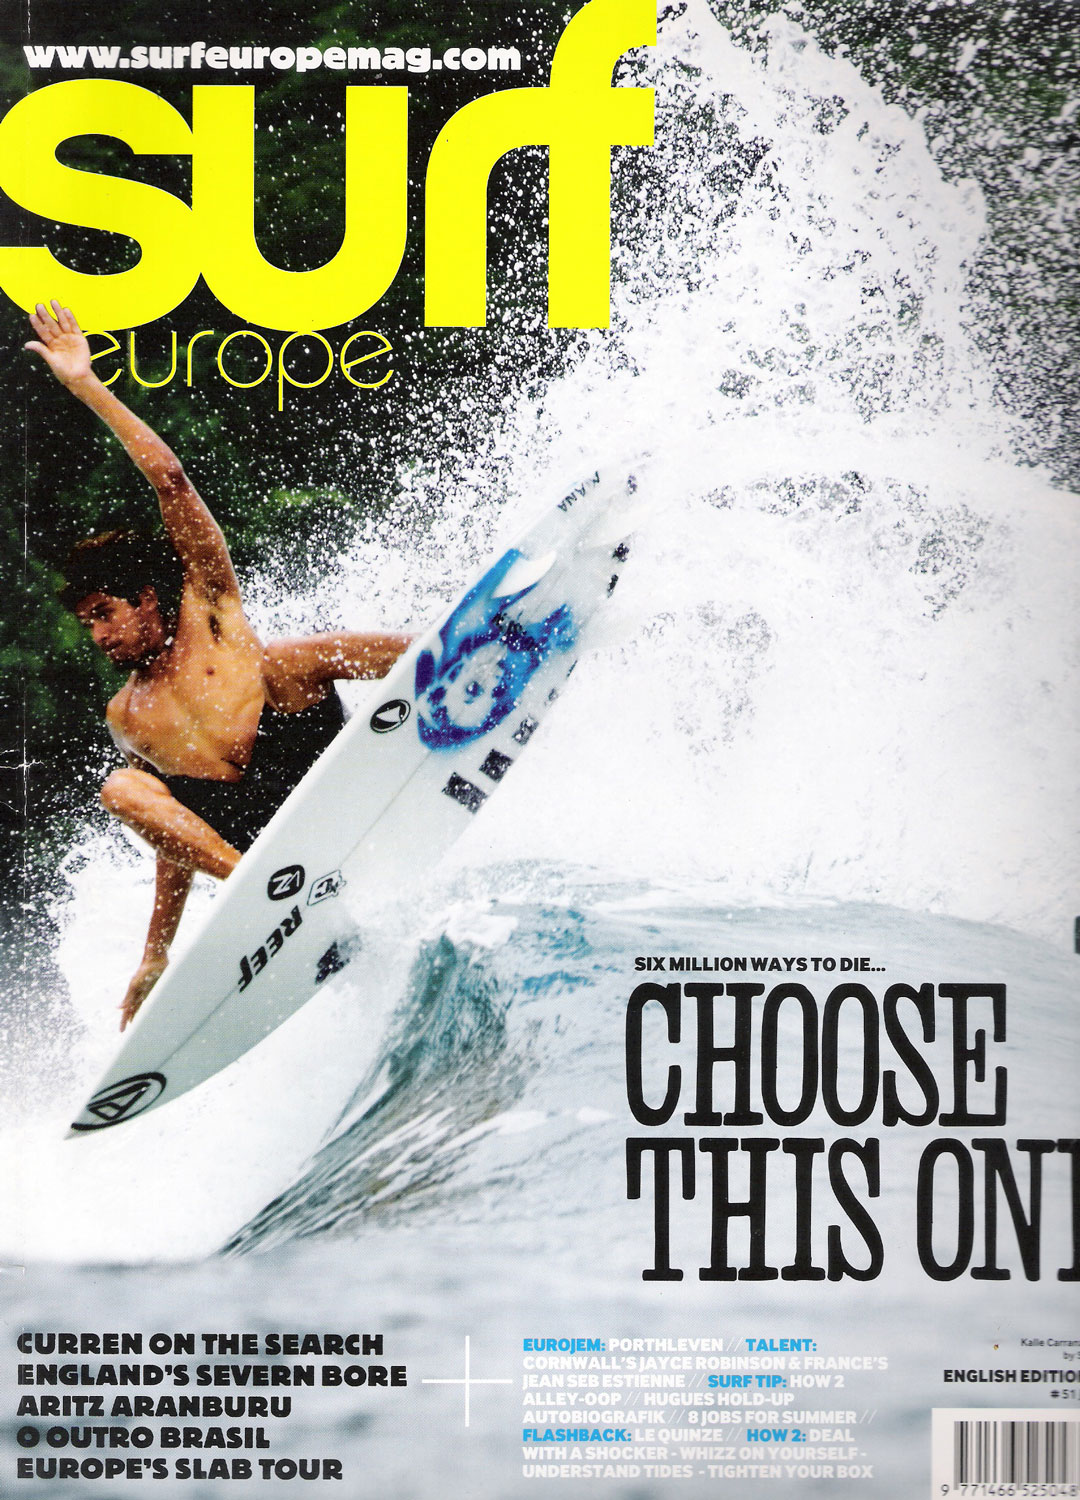 Cover-3-surfeurope.jpg